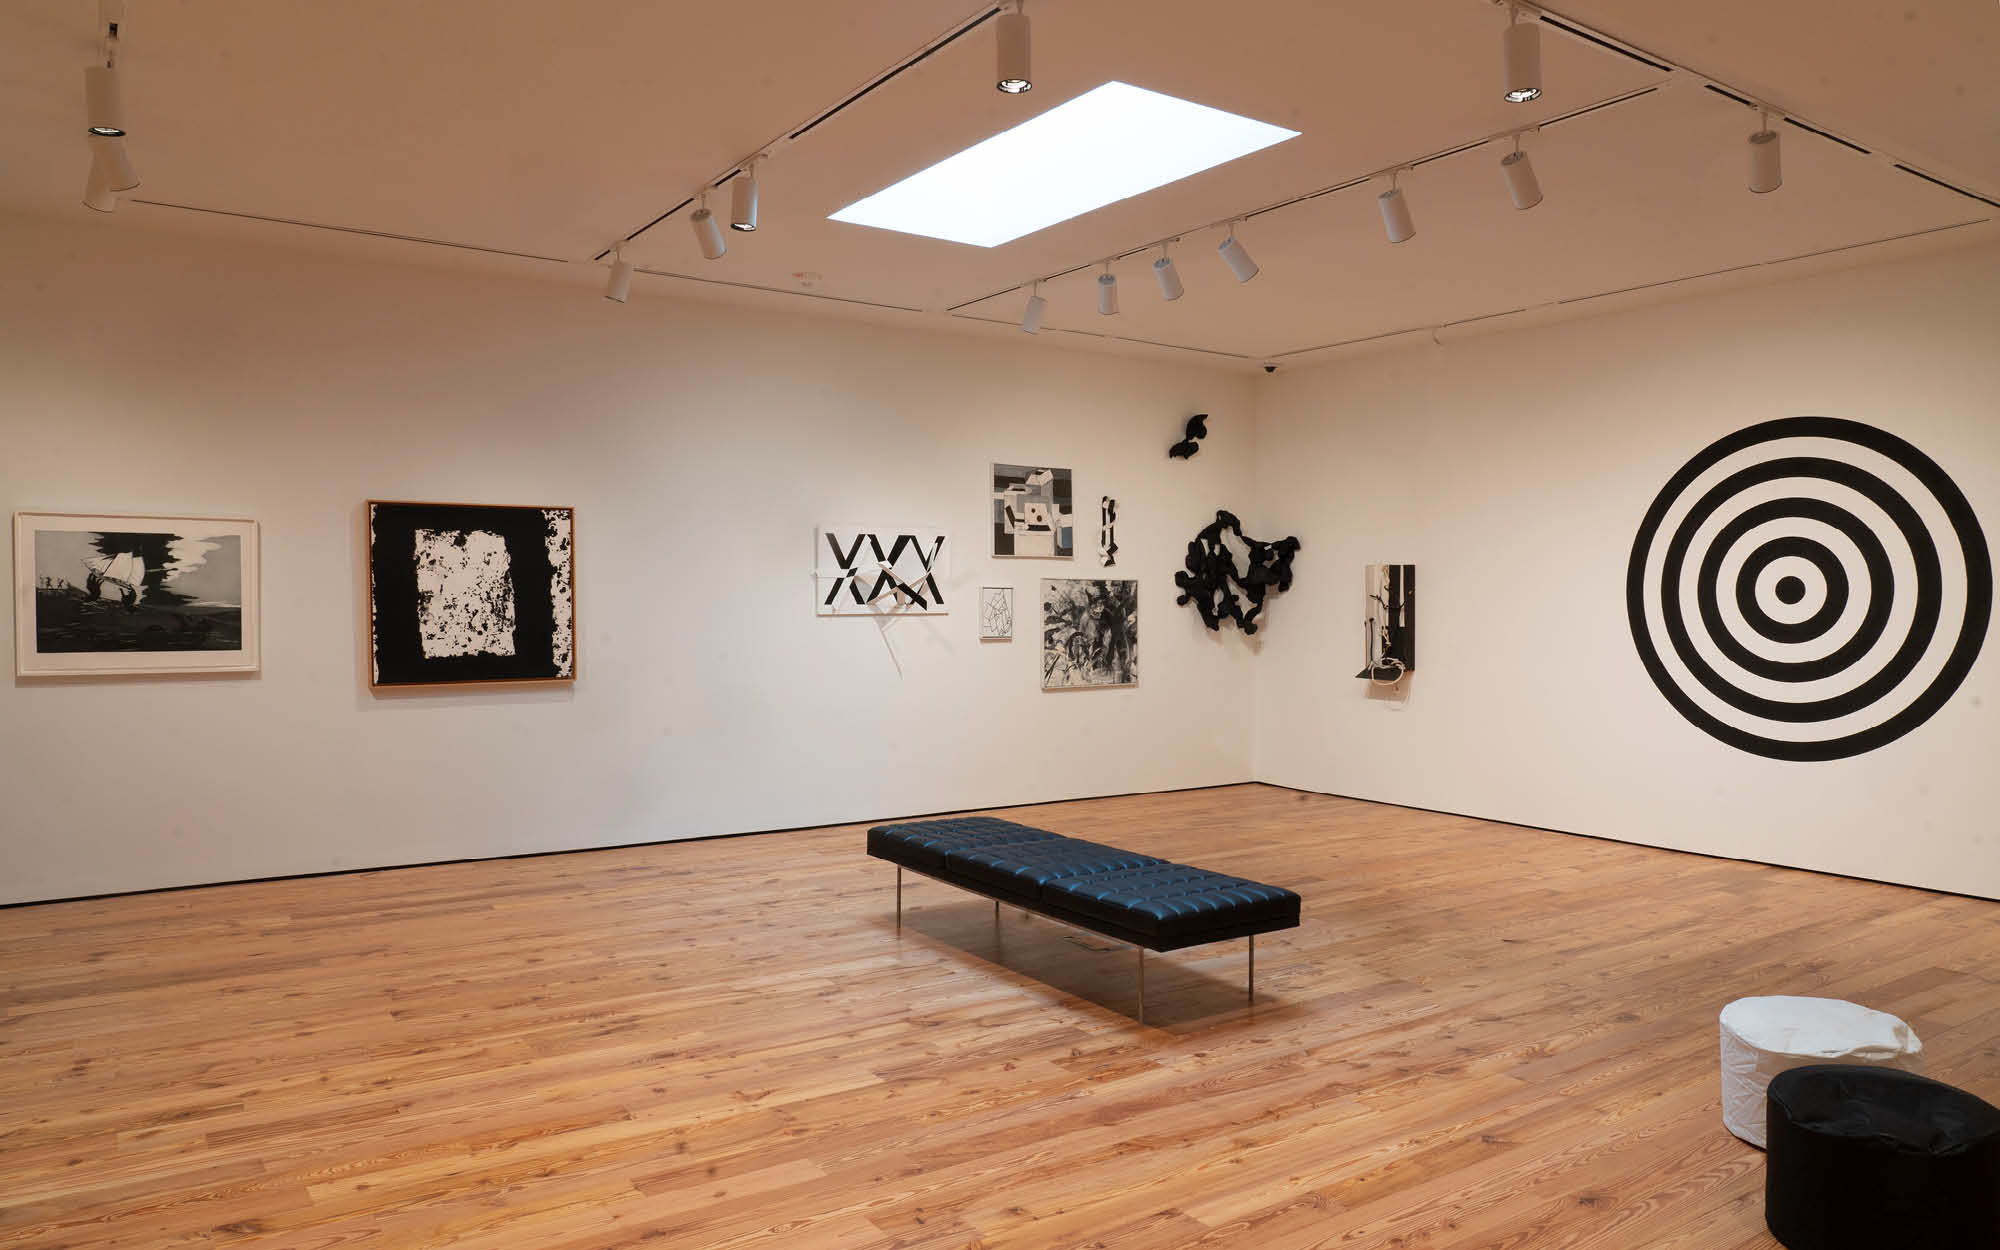 Color. Theory. & (b/w) Exhibition's North Gallery featuring work from Kara Walker, Richard Serra, Robert Barber, and Dave Lewis